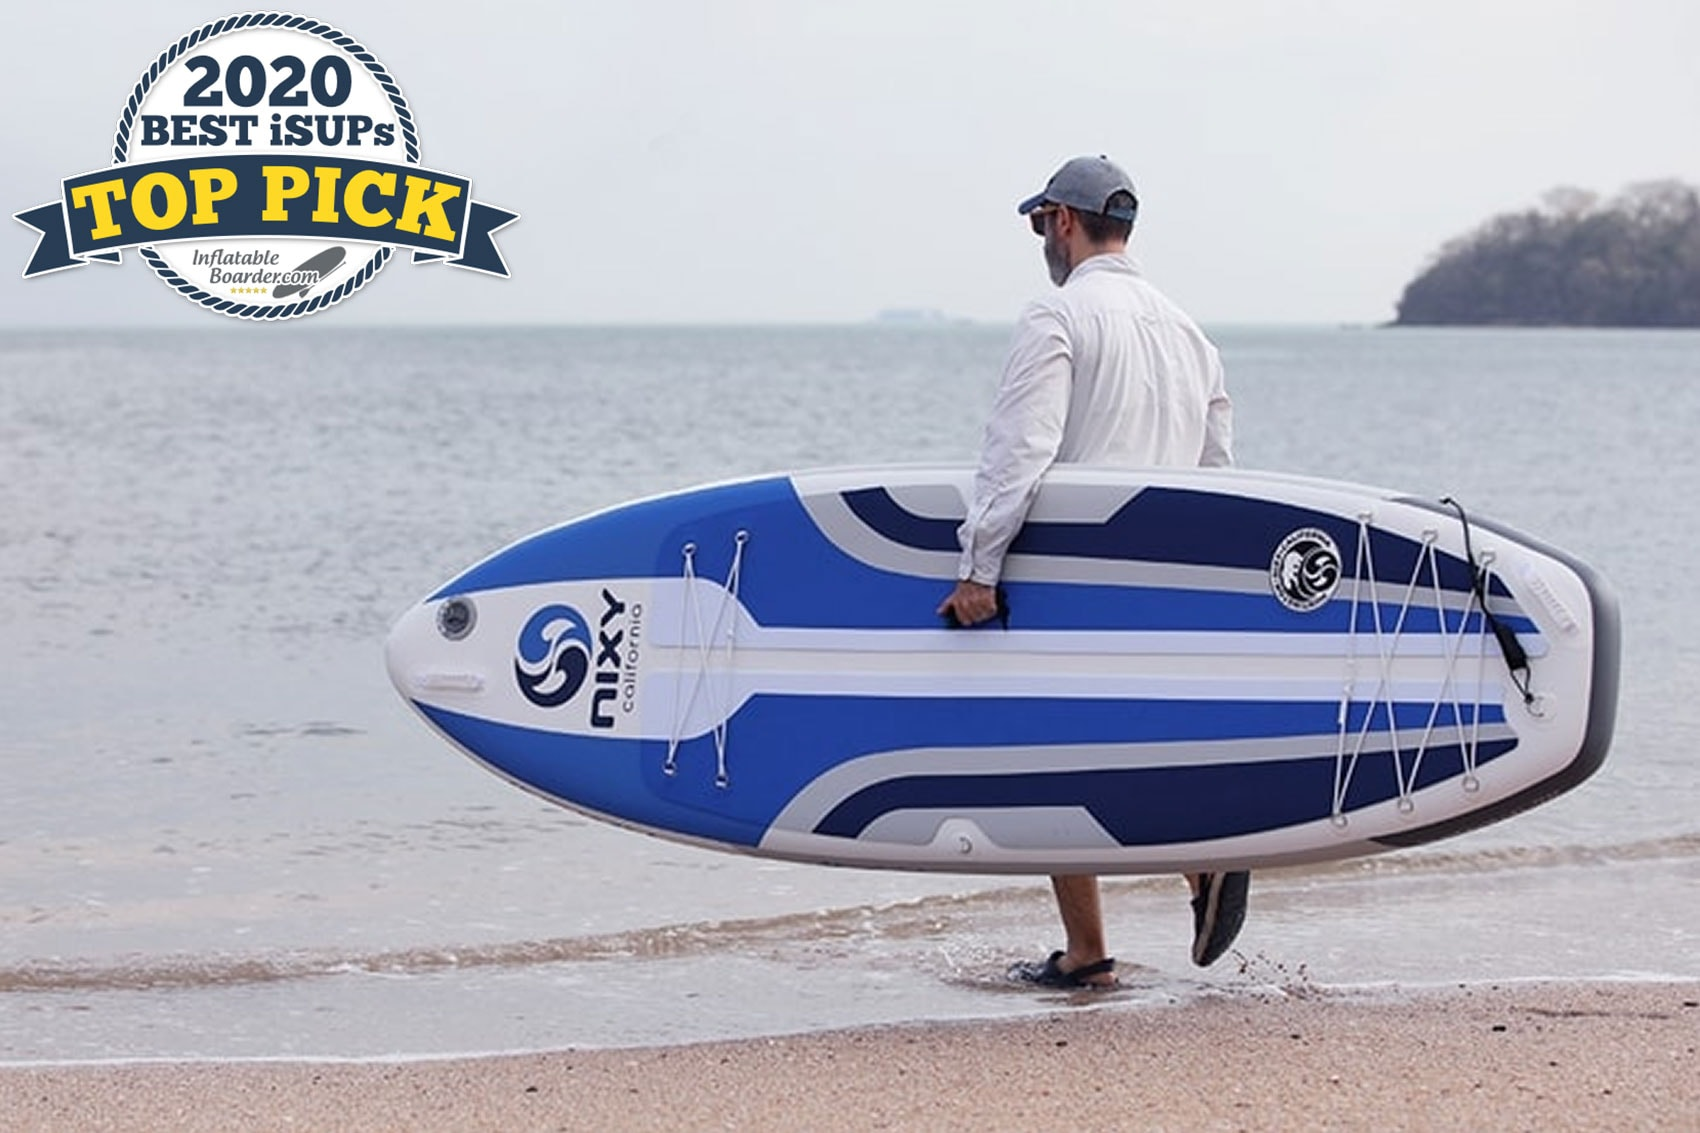 """Blue Nixy Huntington G3 paddle board review. A badge in the corner reads """"2020 Best iSUPs TOP PICK"""""""